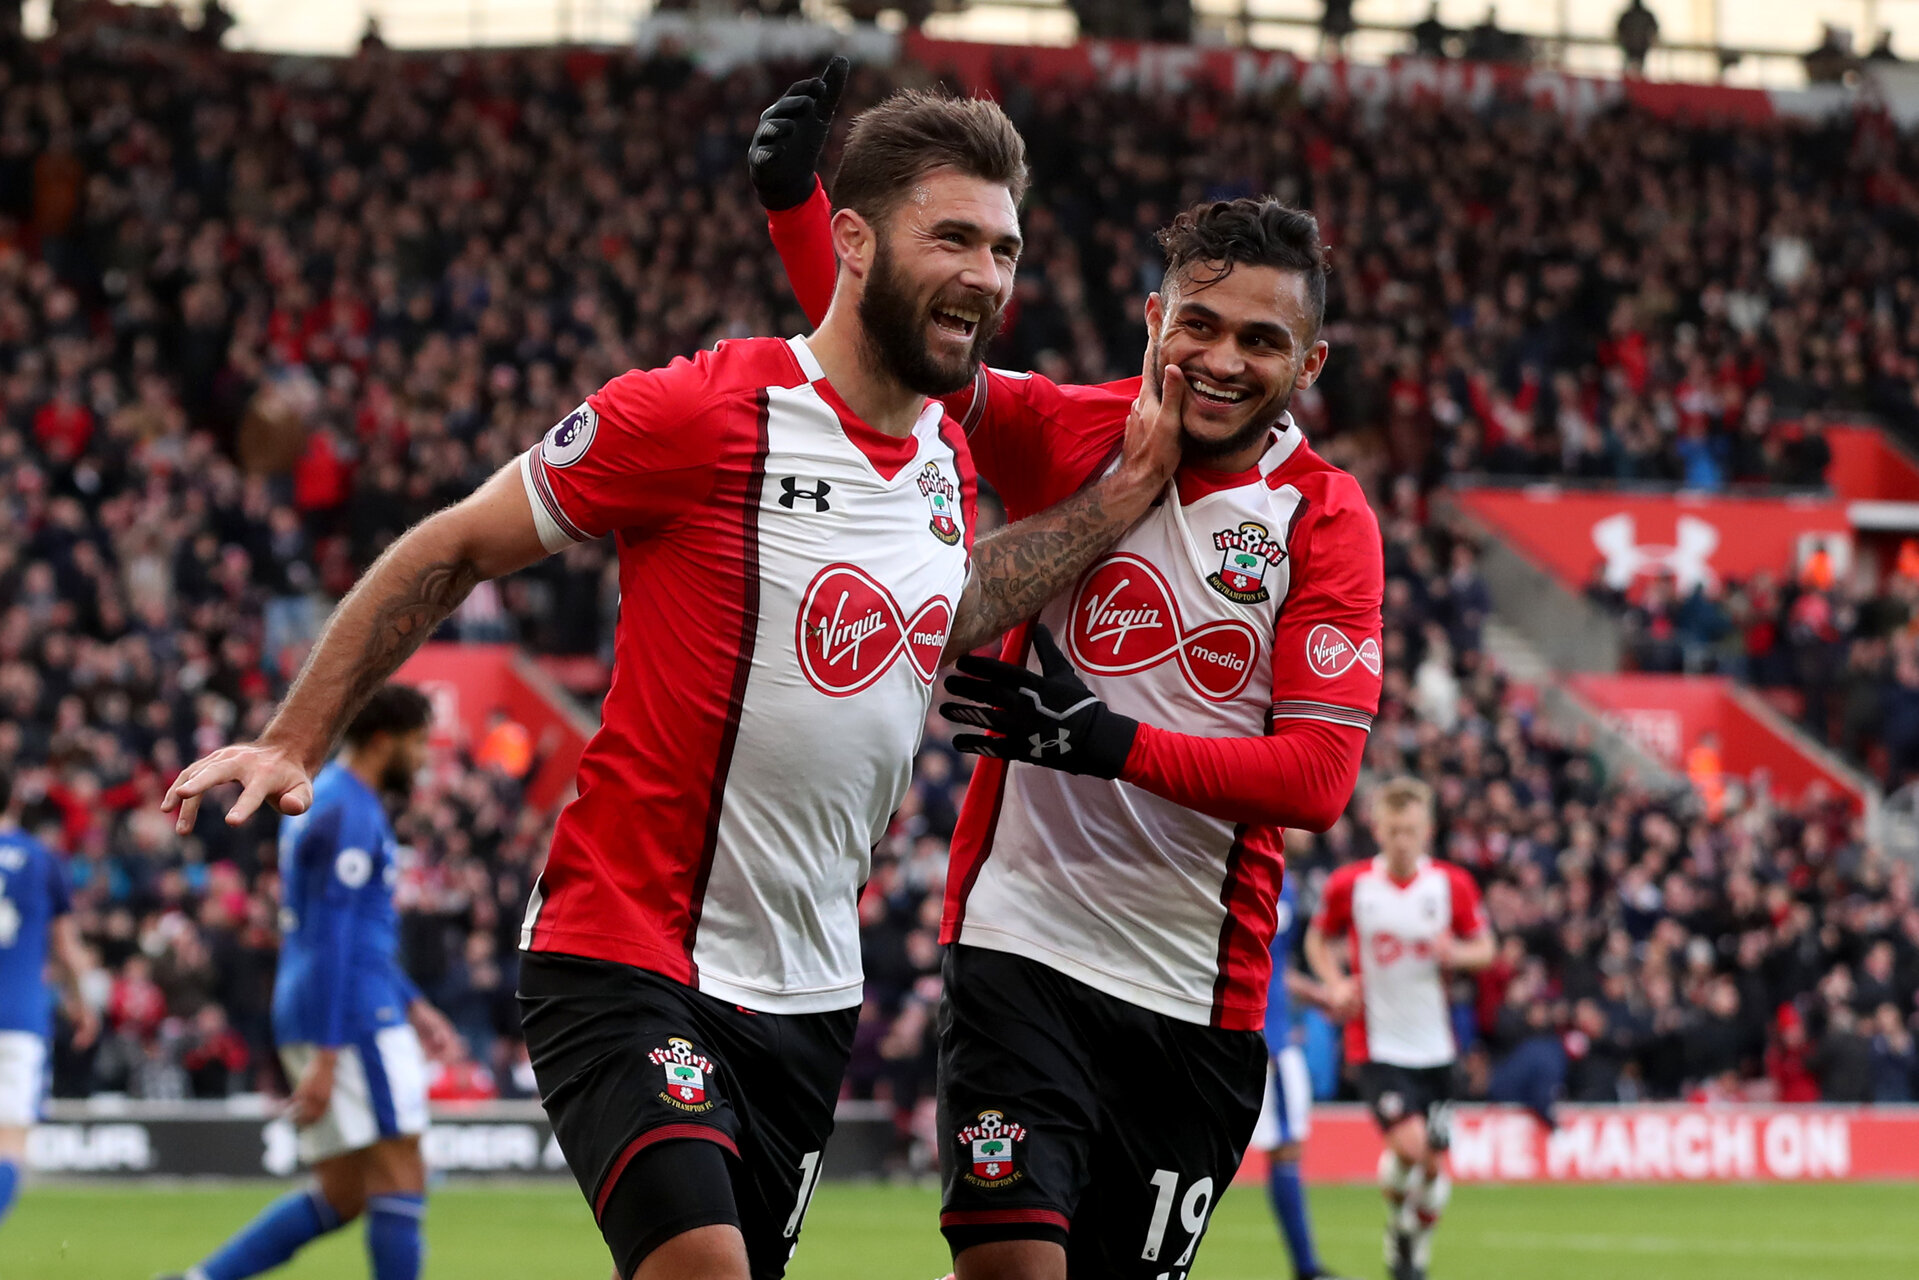 SOUTHAMPTON, ENGLAND - NOVEMBER 26: Southampton's Charlie Austin(L) celebrates with Sofiane boufal during the Premier League match between Southampton and Everton at St Mary's Stadium on November 26, 2017 in Southampton, England. (Photo by Matt Watson/Southampton FC via Getty Images)